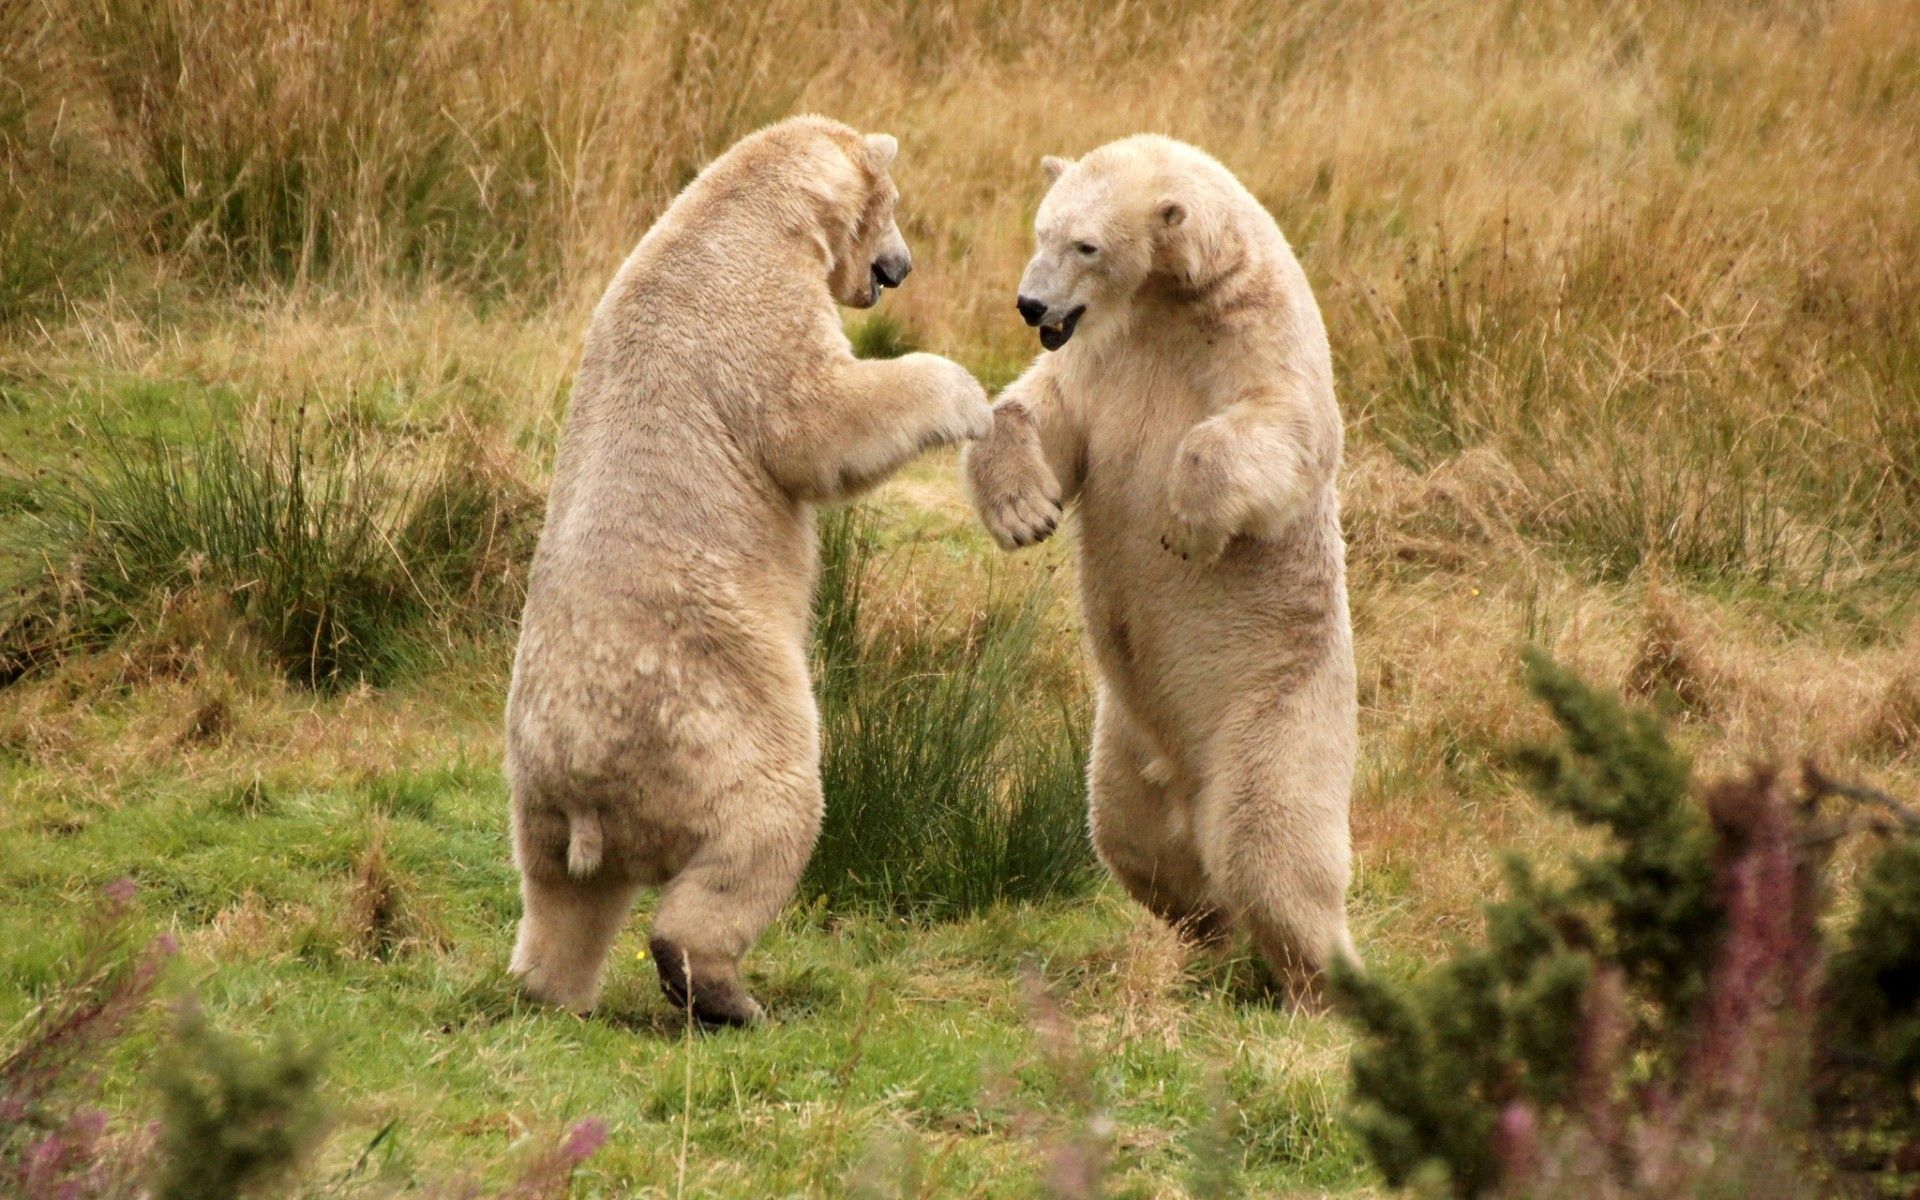 149844 download wallpaper Animals, Bears, Grass, Stroll screensavers and pictures for free